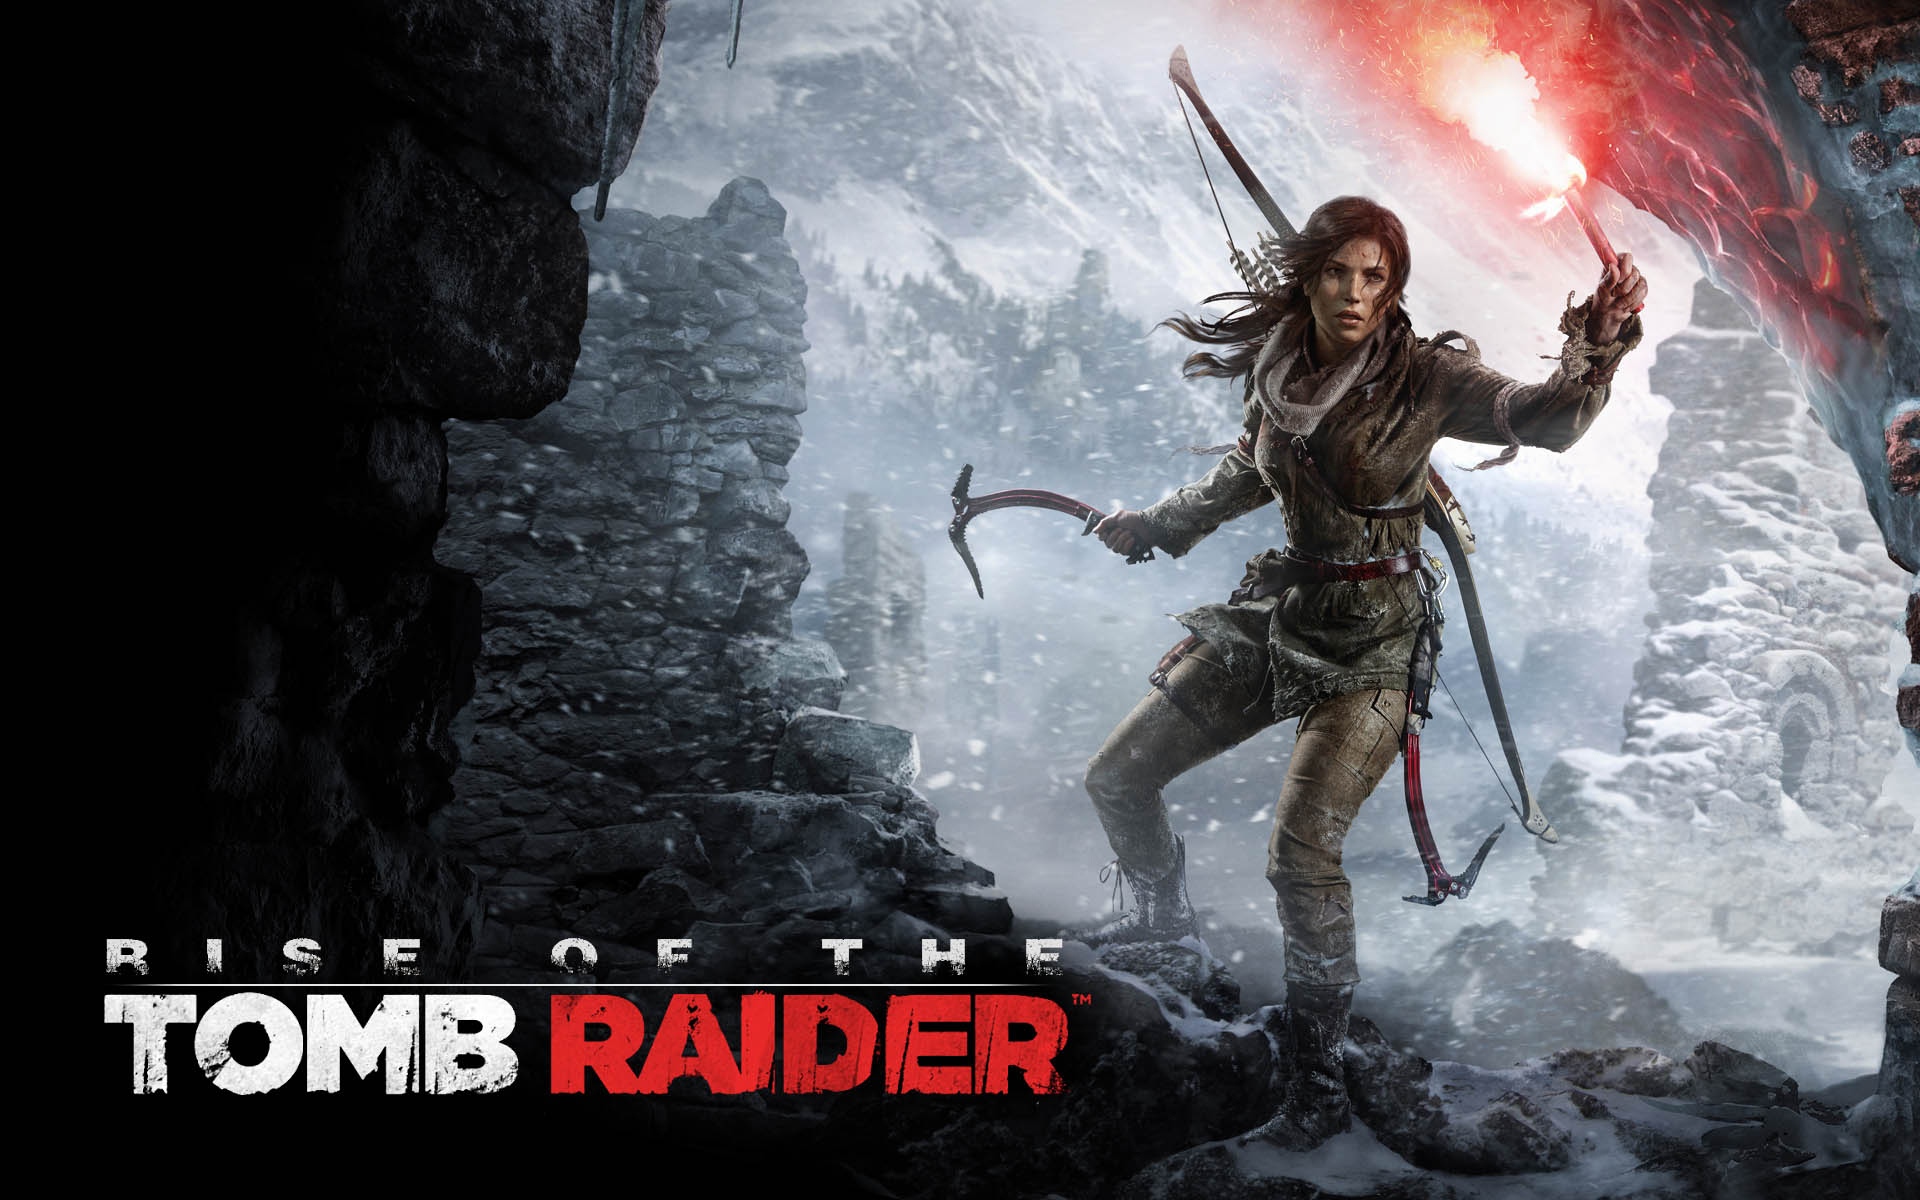 rise of the tomb raider AMD Athlon 200GE Processor with Radeon Vega 3 Graphics Review